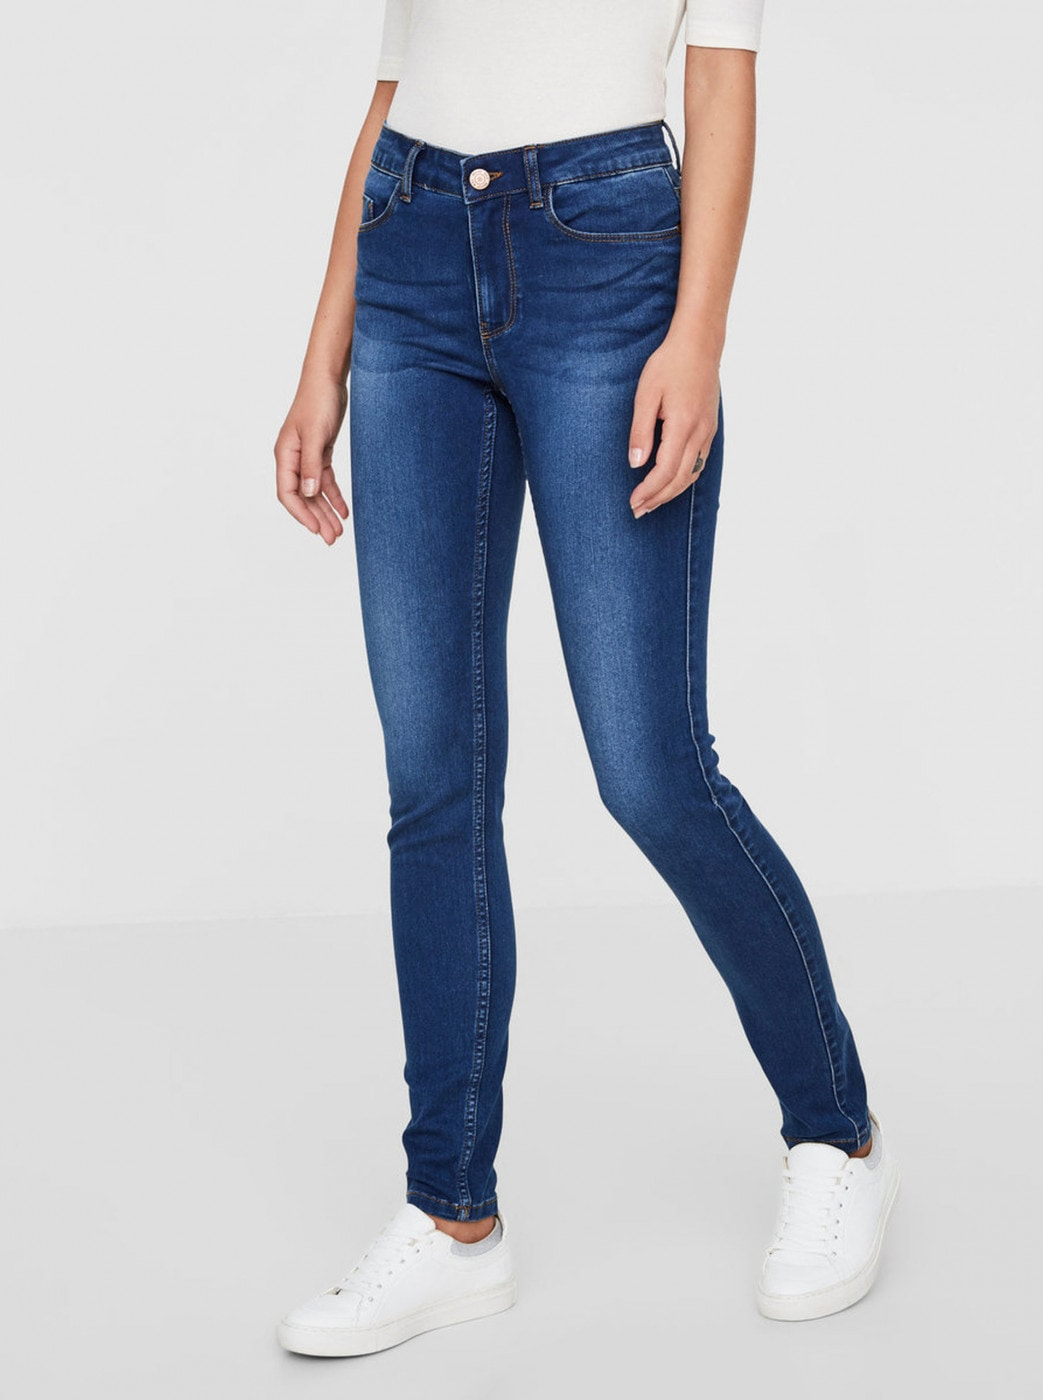 Noisy May Extreme Blue Slim Fit Jeans